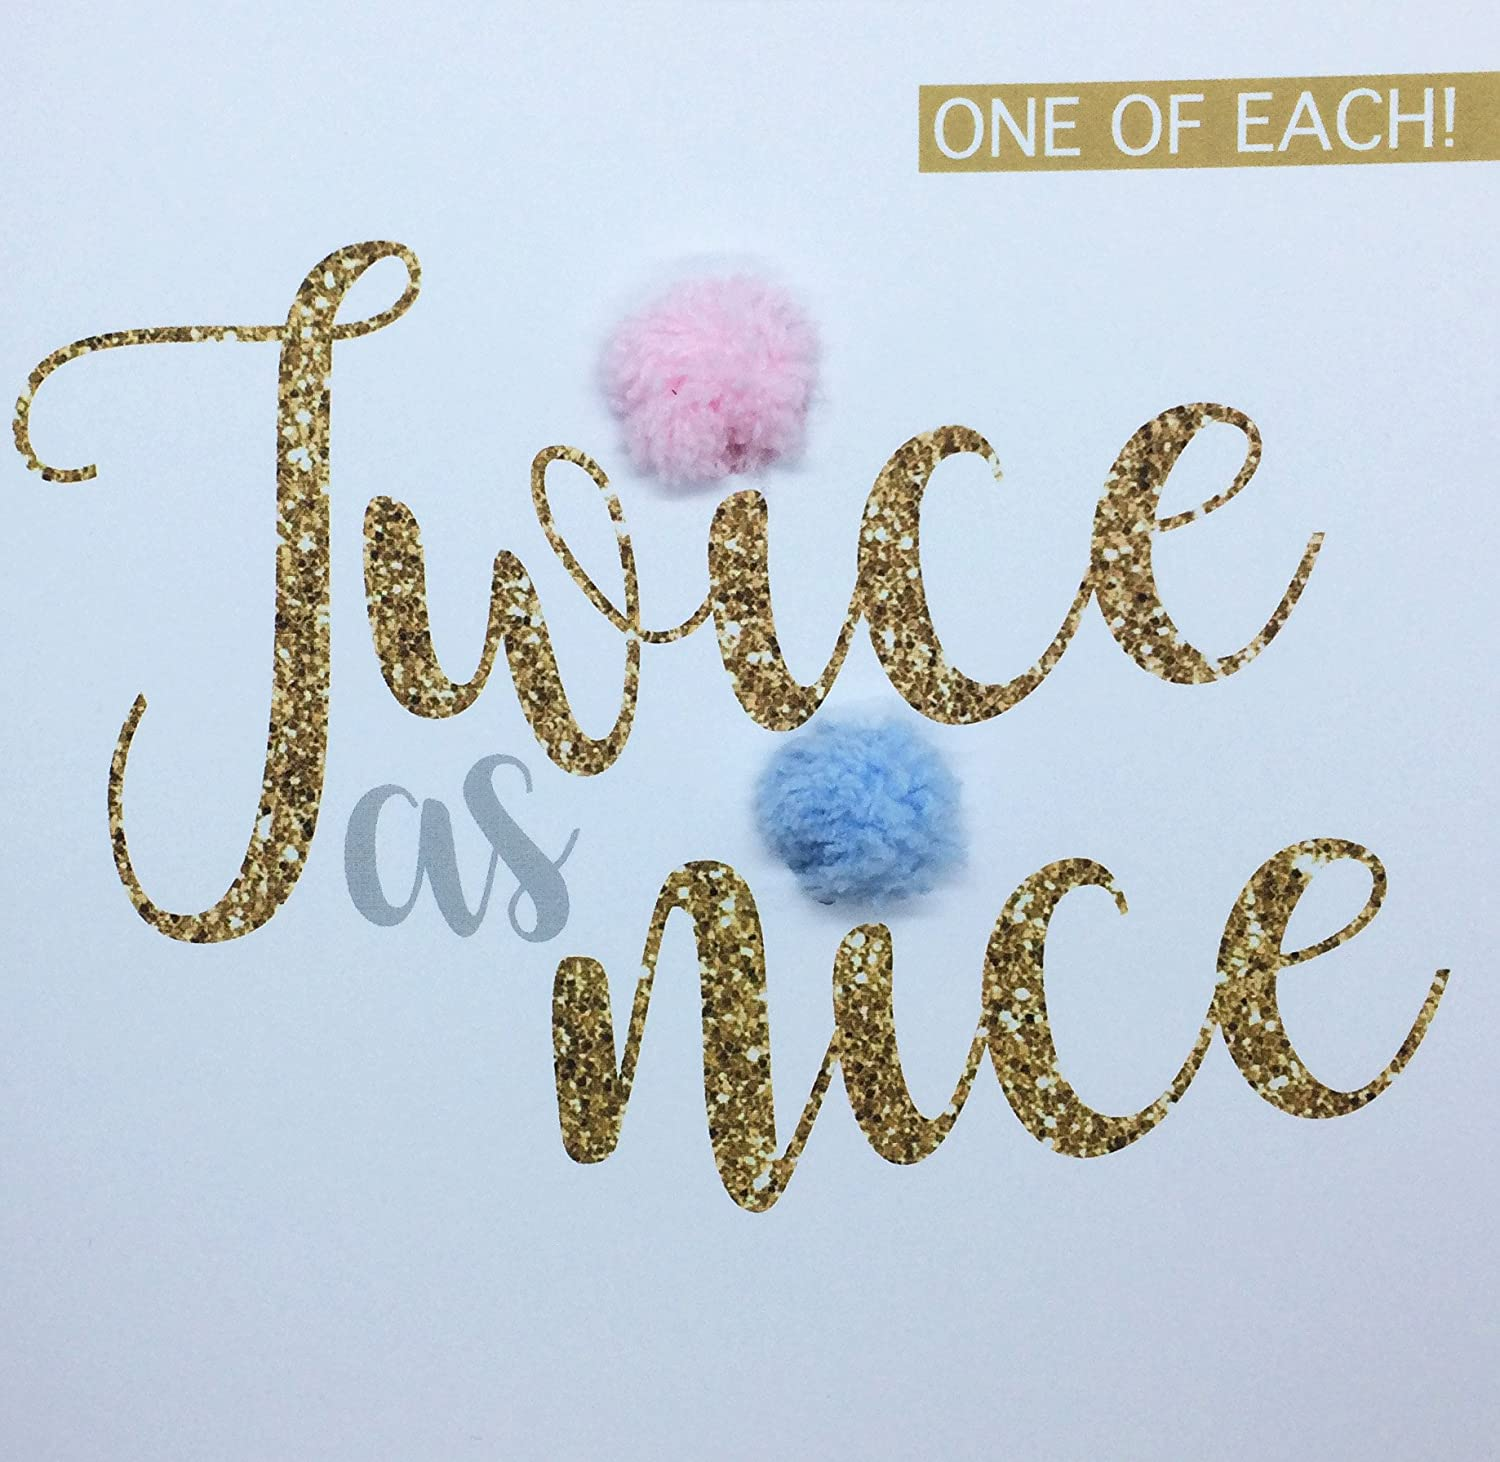 'One of Each, Twice as Nice!' Twins Birth Congratulations Card, boy and Girl, Hand Finished with a Pink and Blue Pompom 'One of Each PUSHING THE ENVELOPE